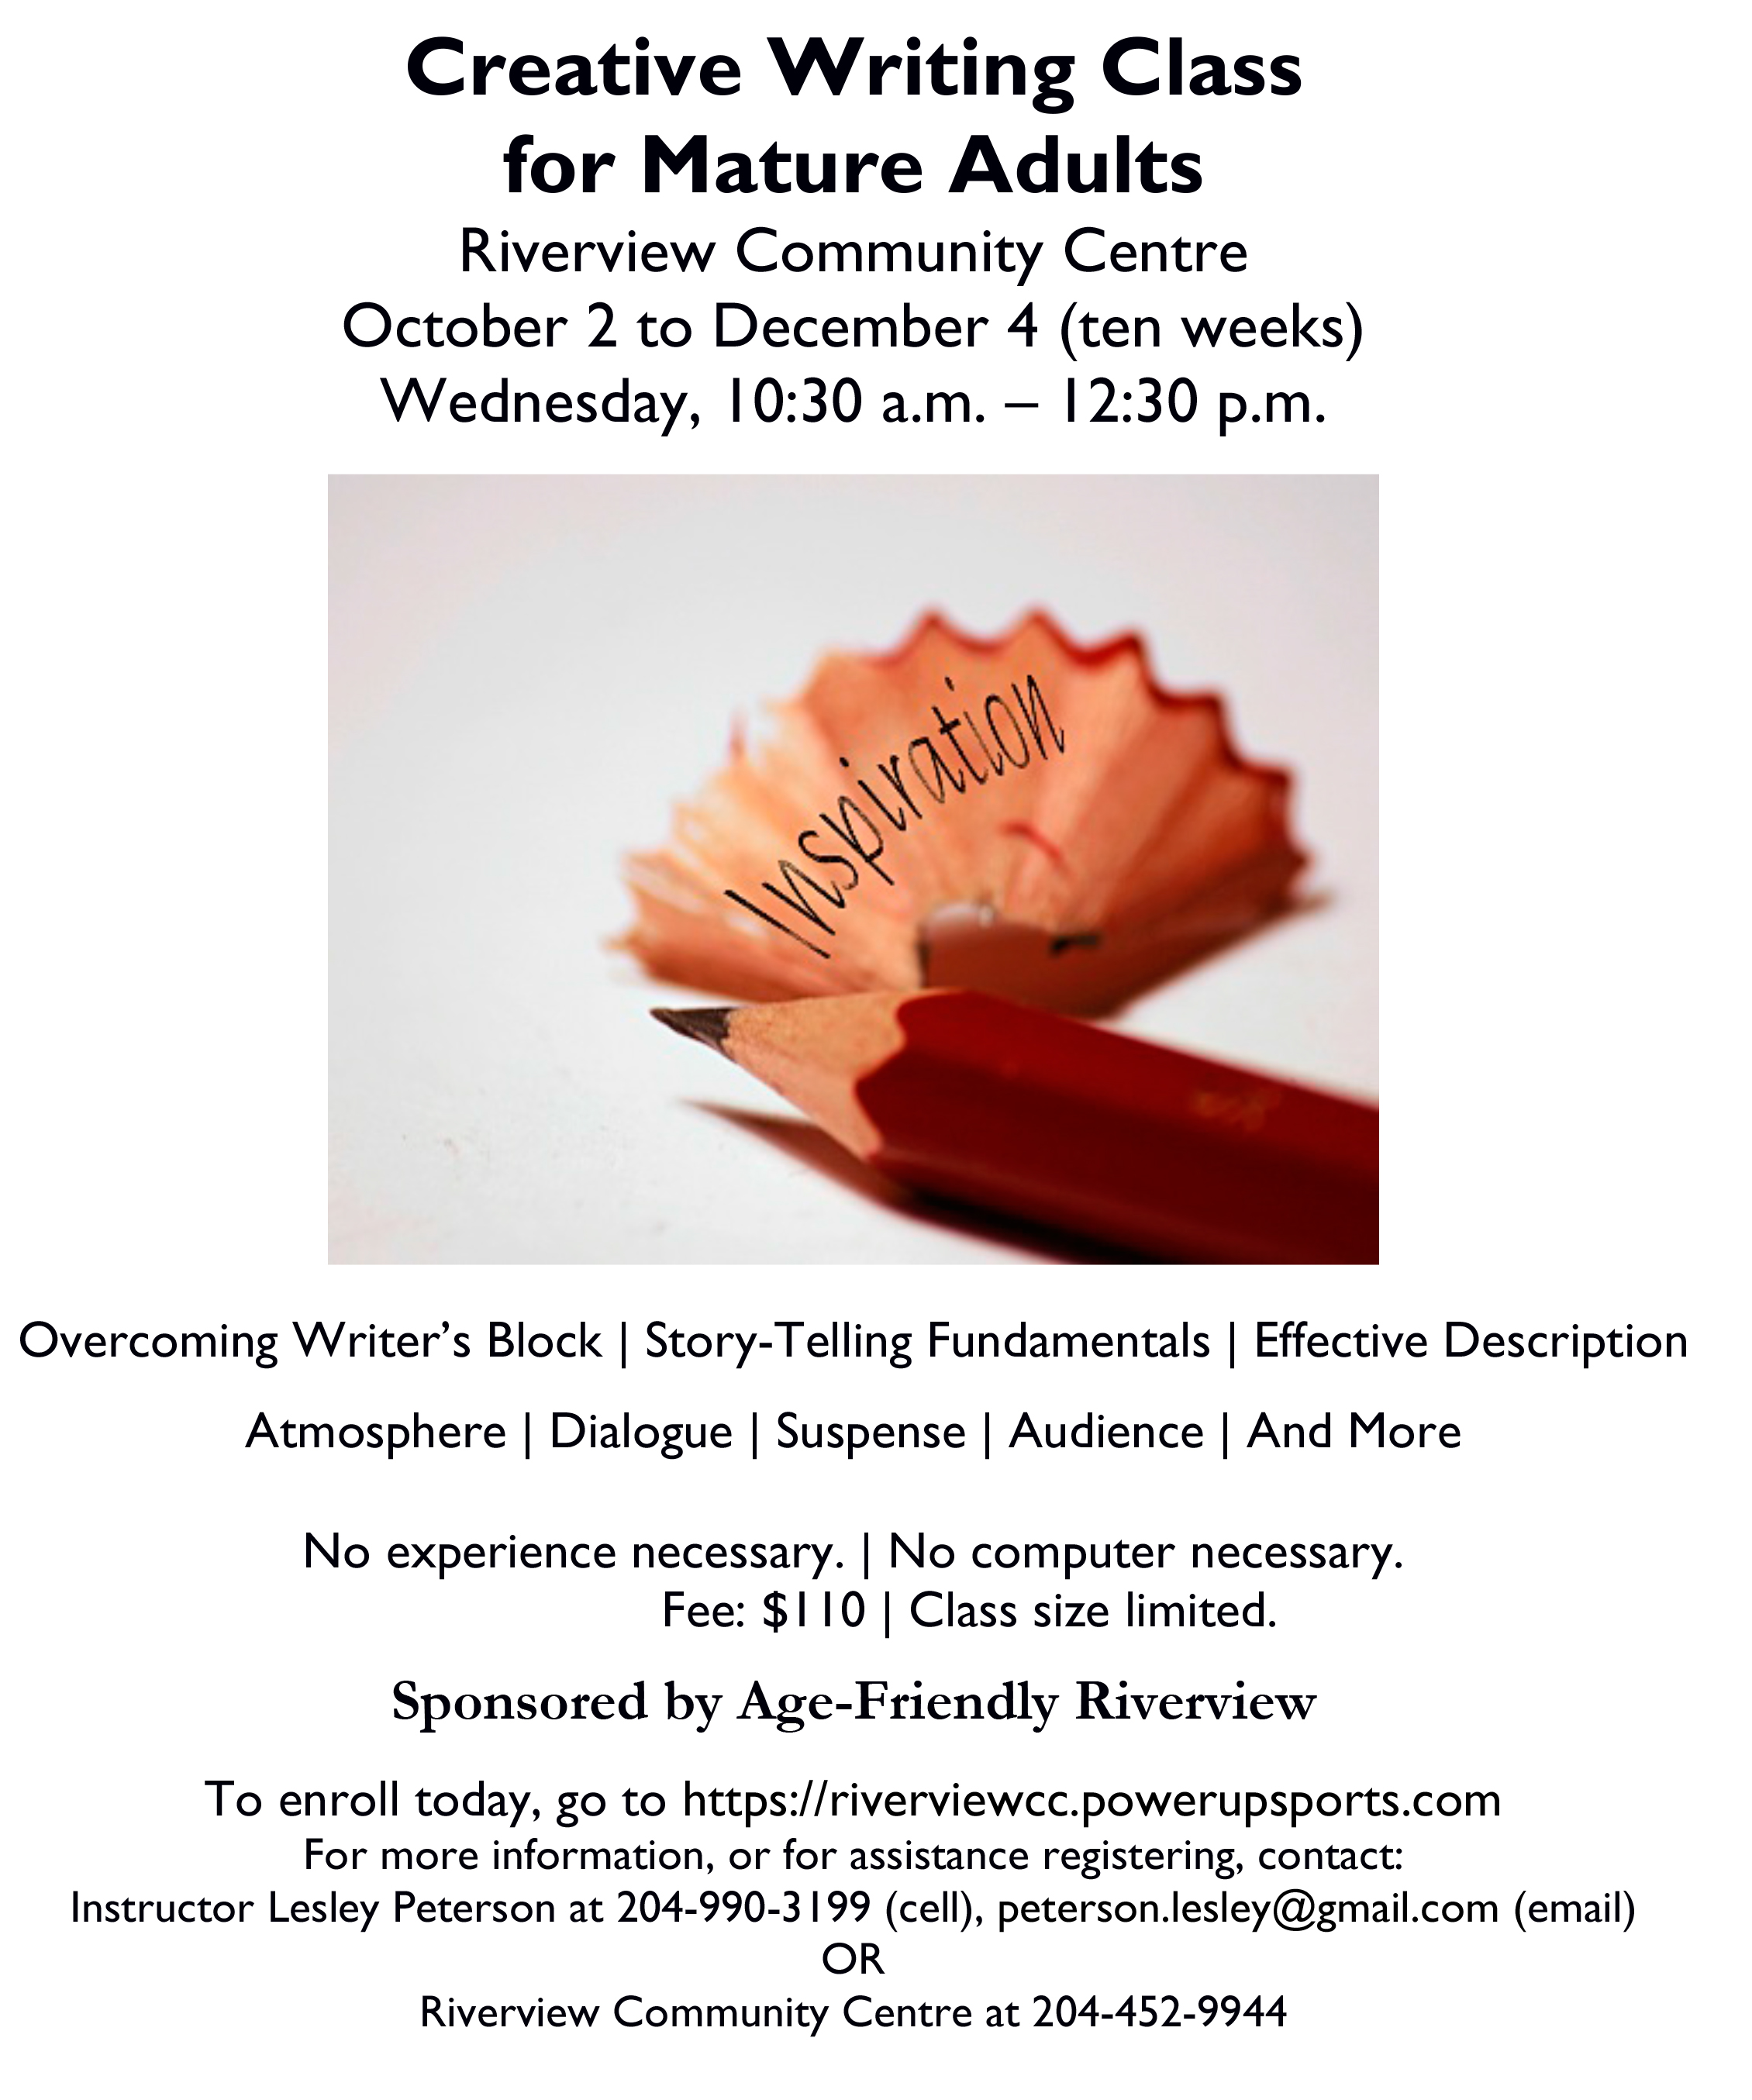 Writing Course for Mature Adults | Riverview Community Centre